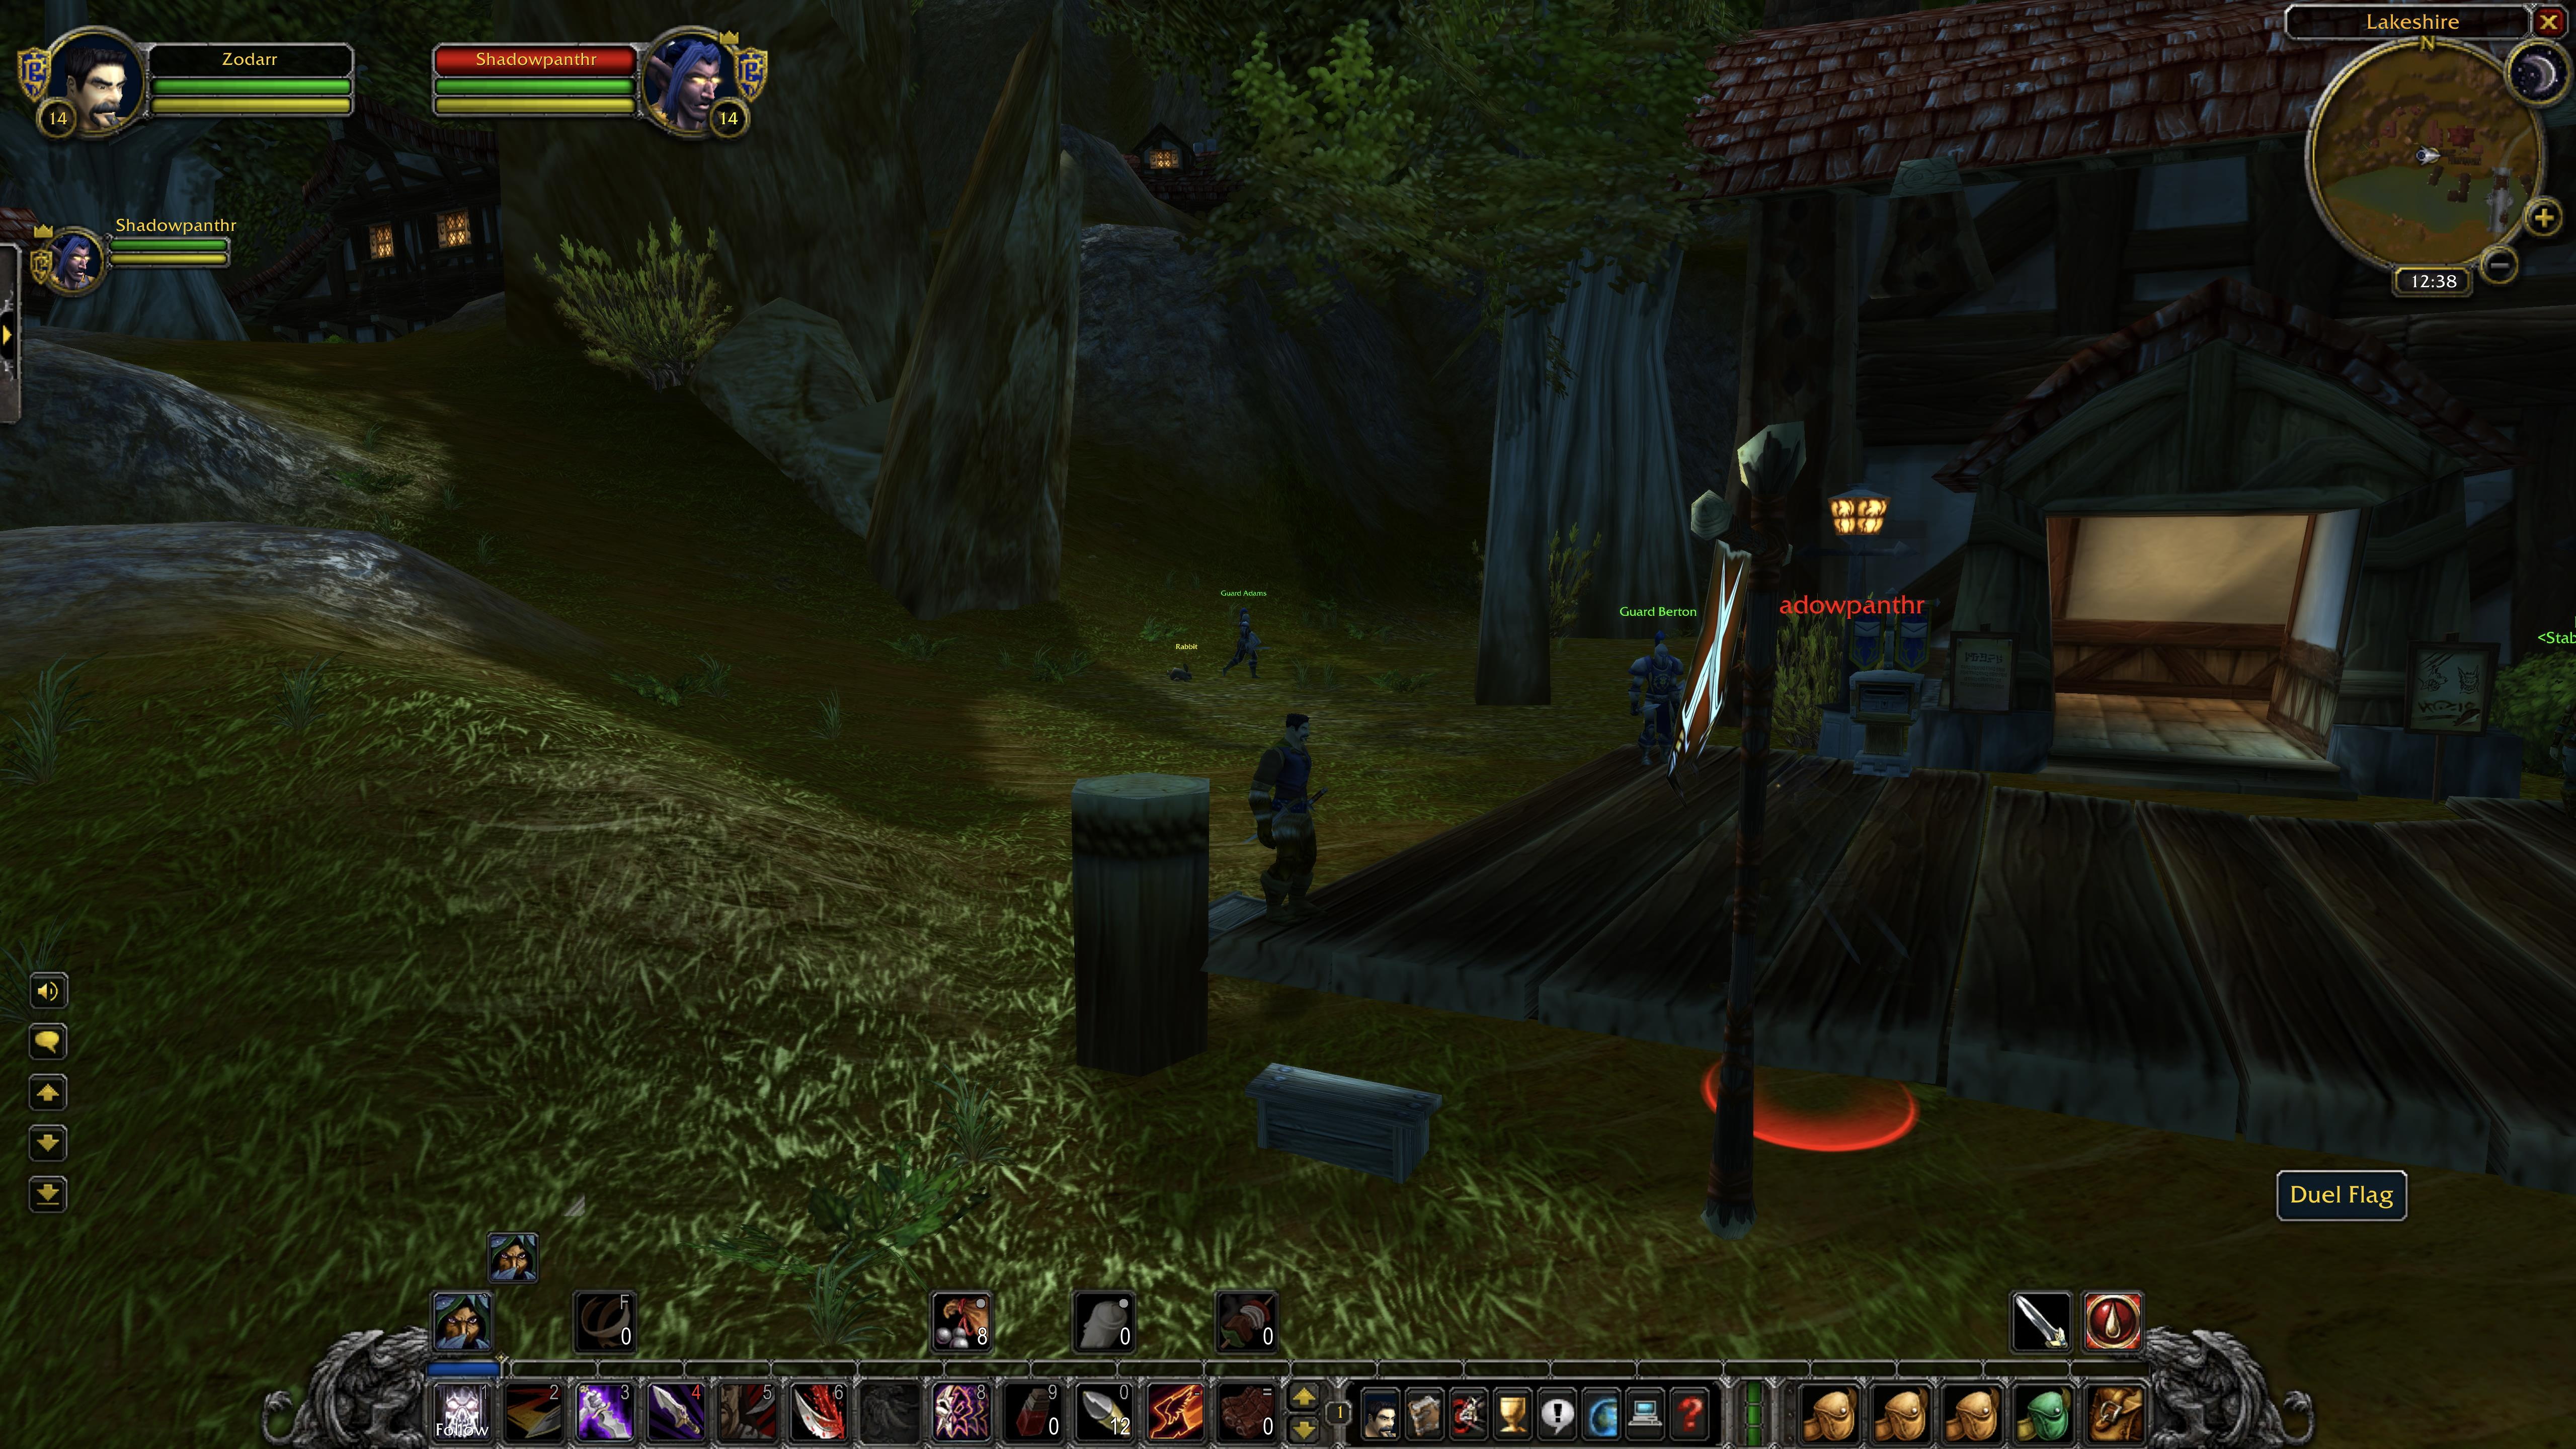 Night Elf Stealth - 3 MoD